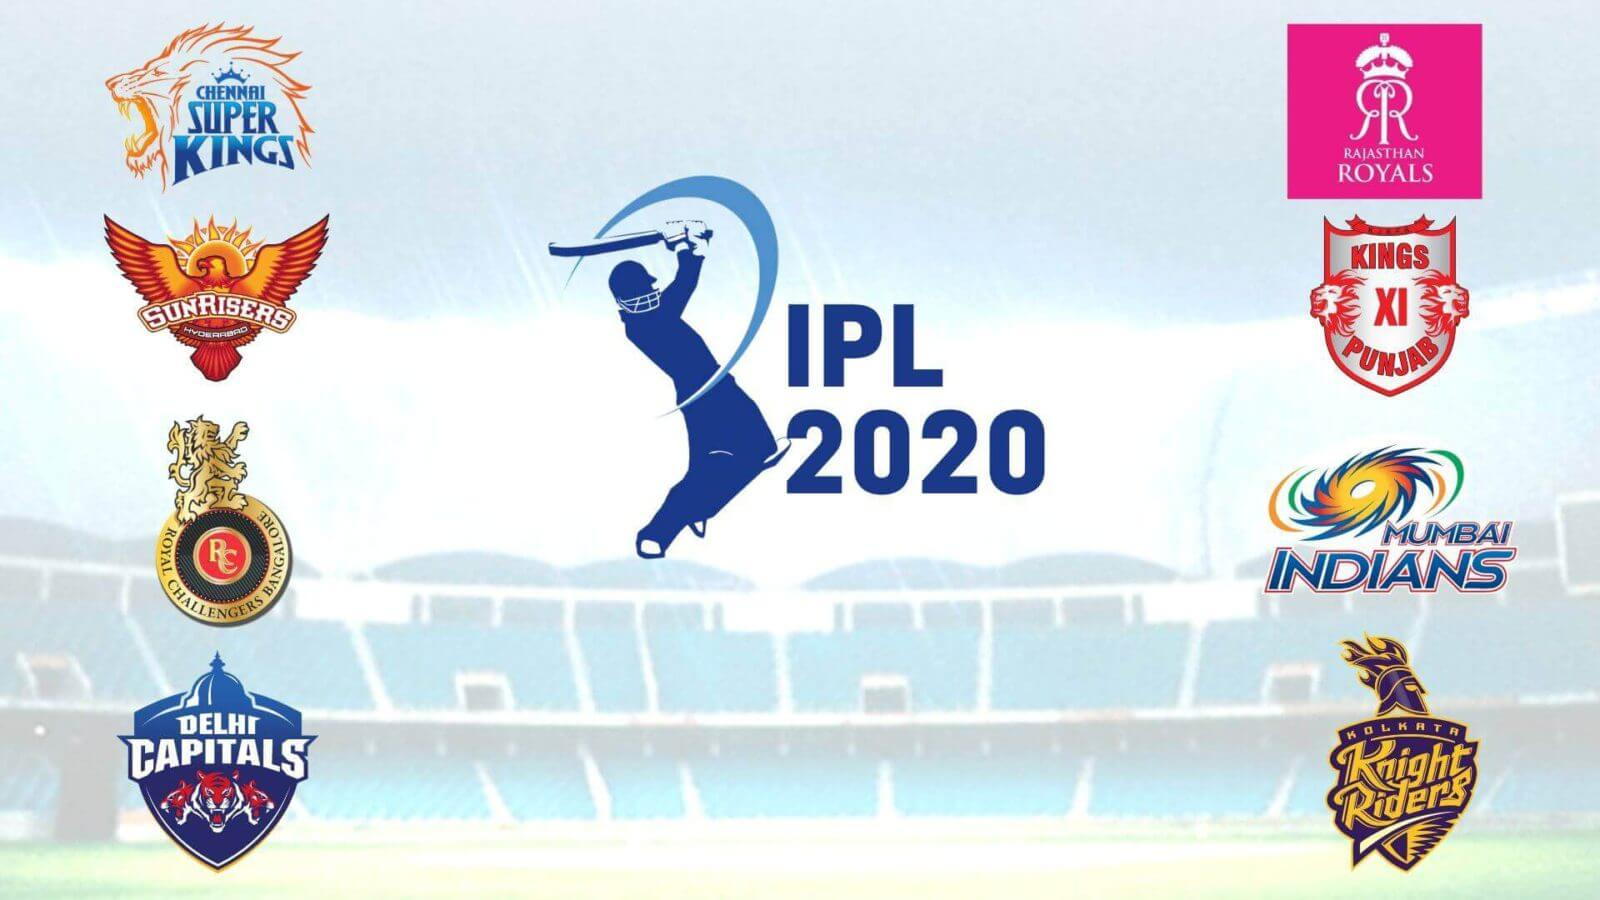 IPL 2020 to begin from Sep 19 to Nov 10 in UAE after getting clearance from Indian govt